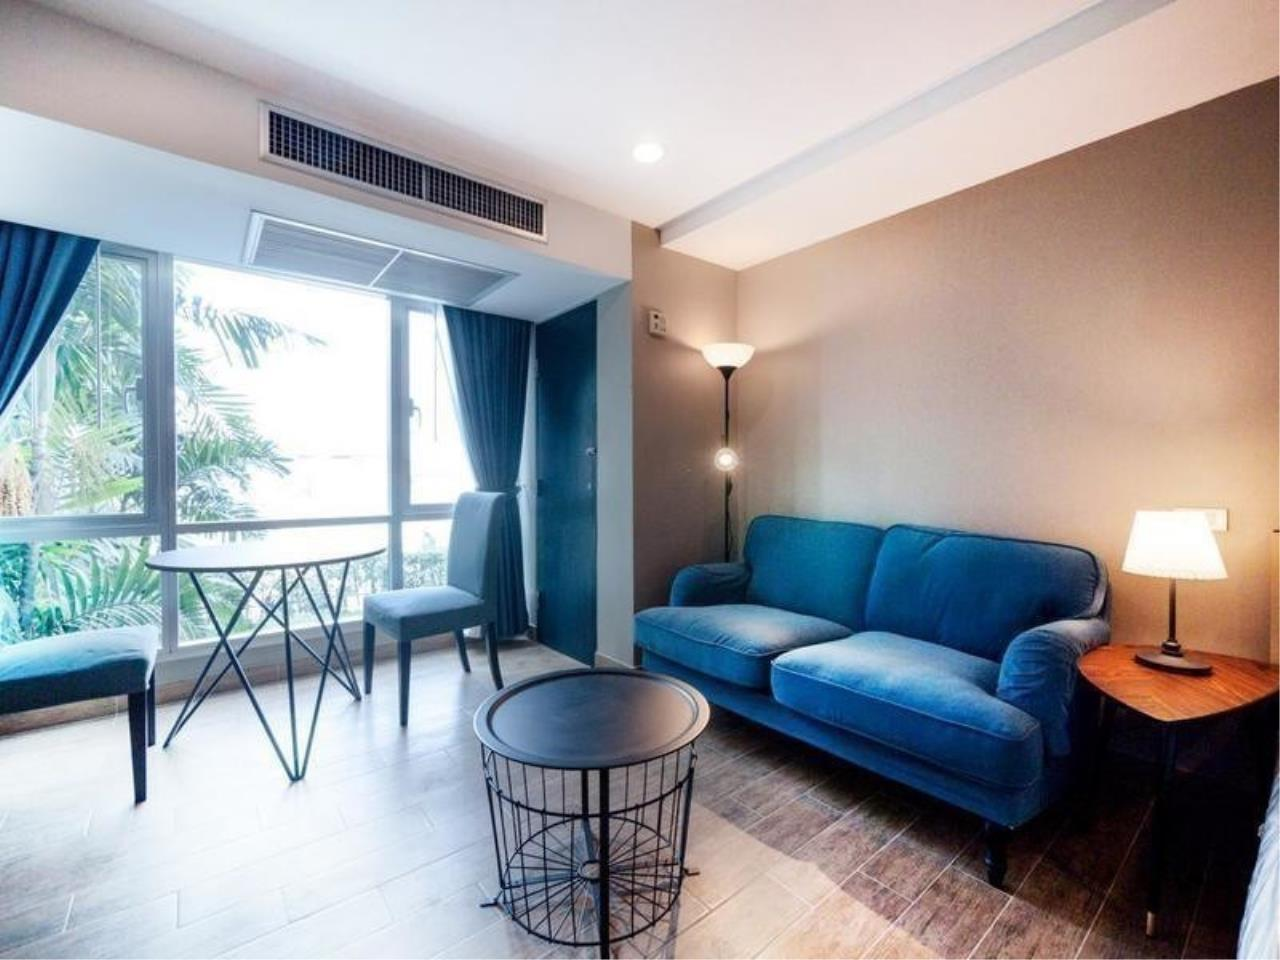 Quality Life Property Agency's For Rent At The Trendy Condominium , Many Units Available Here 2